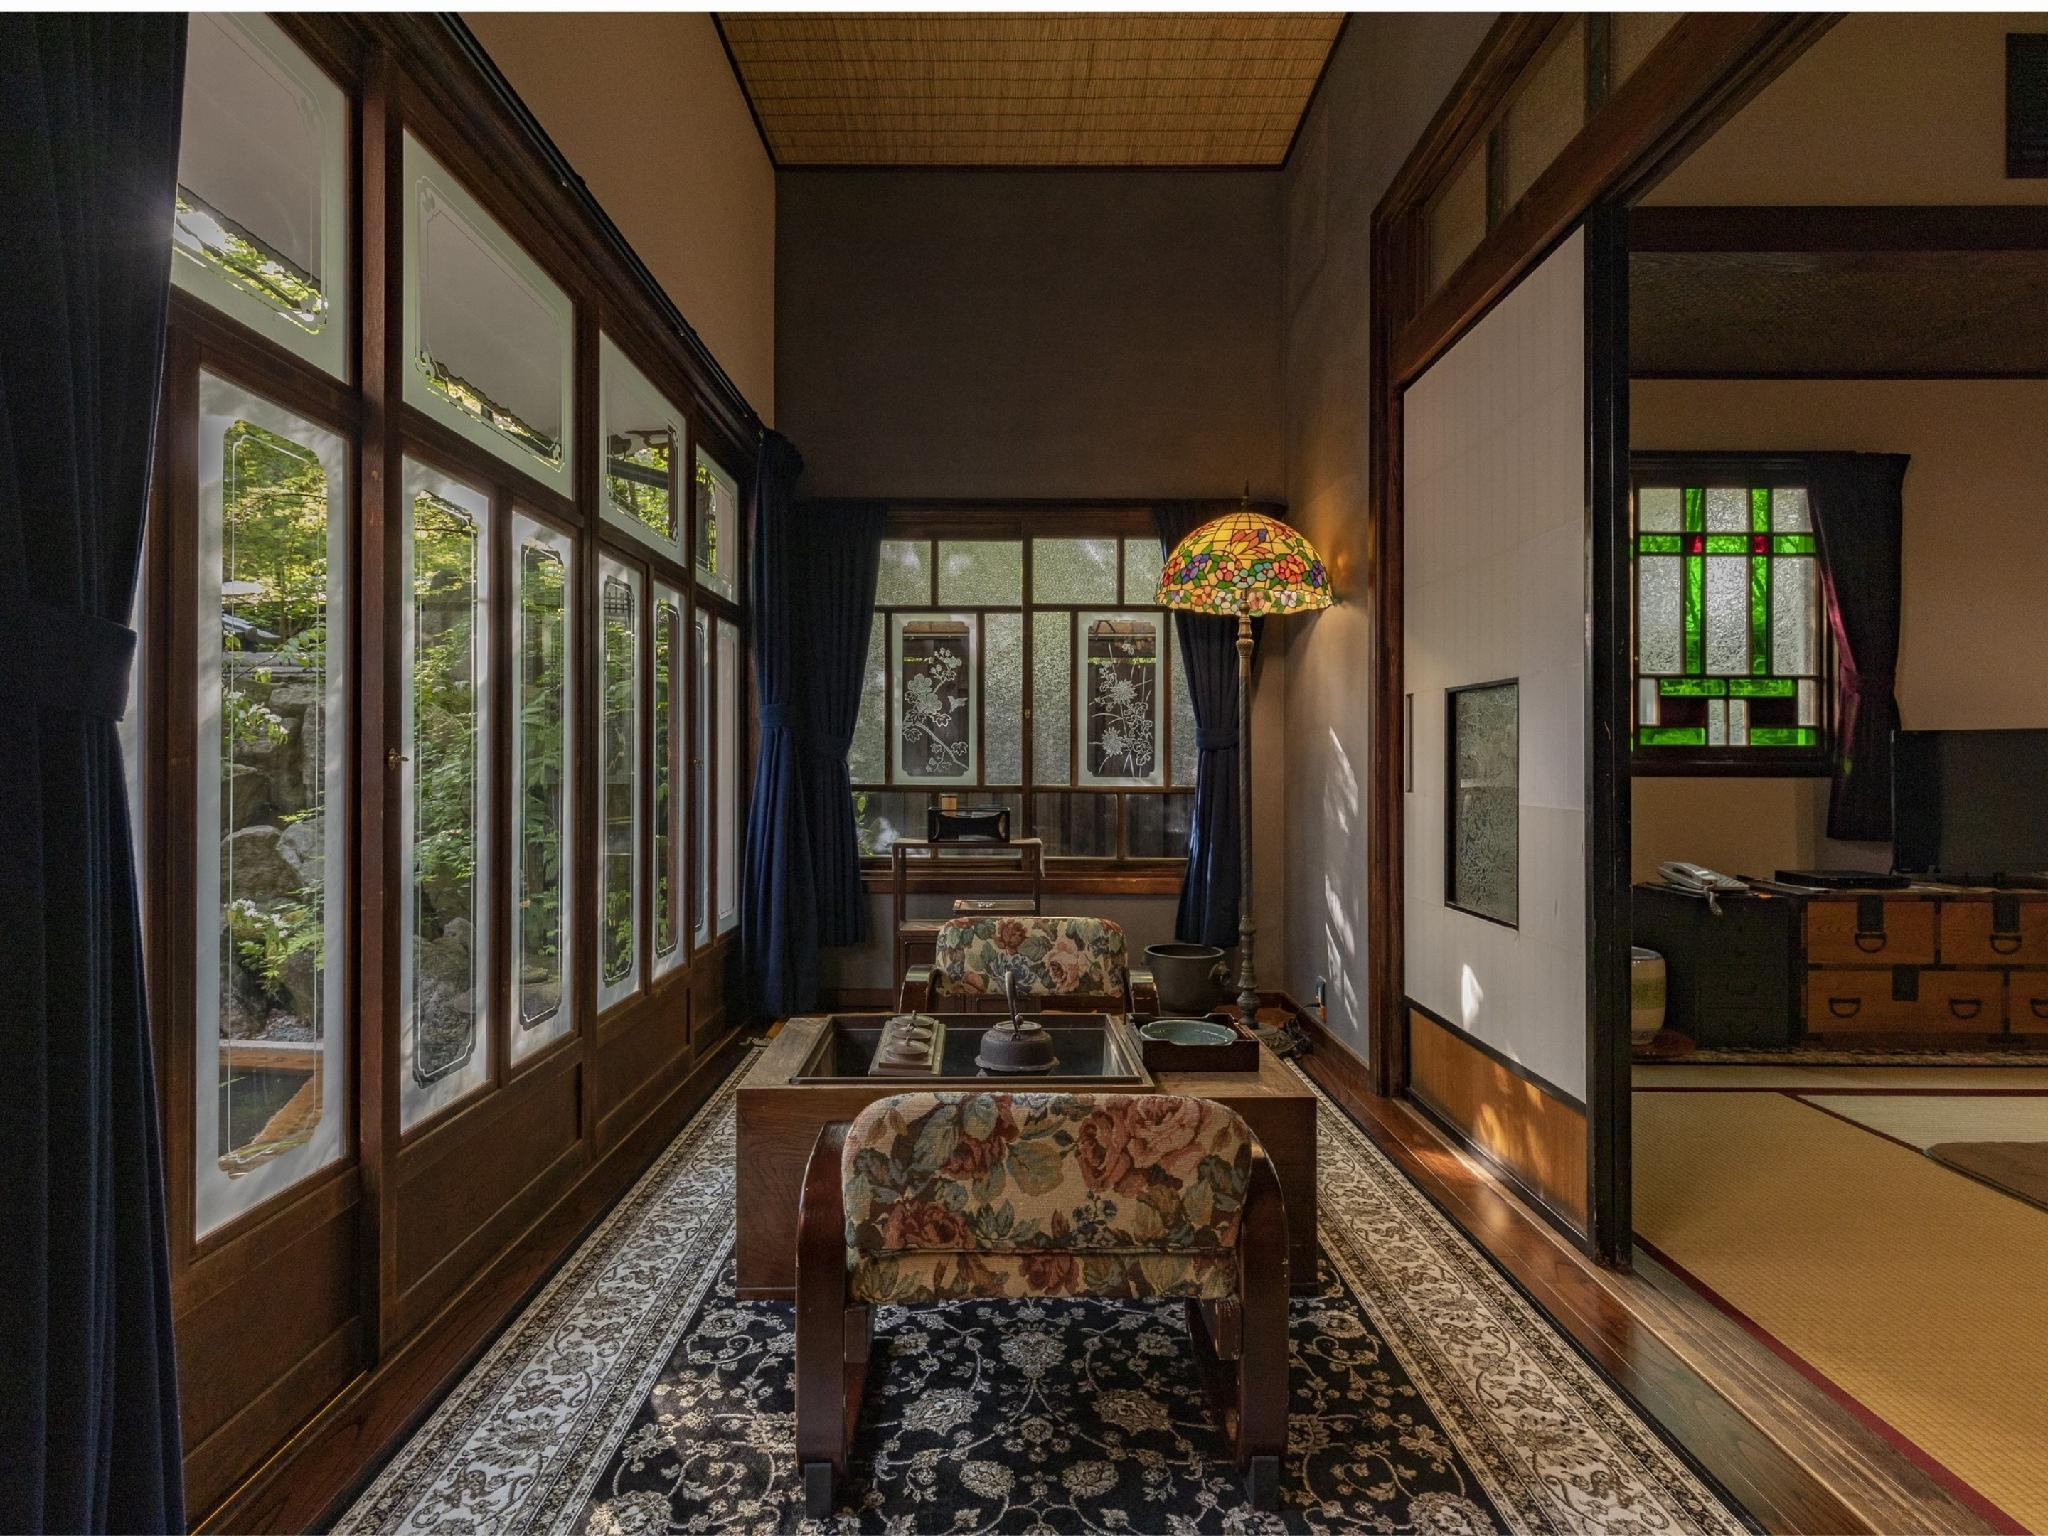 Detached Suite with Indoor Hot Spring Bath & Open-air Bath (Type C)